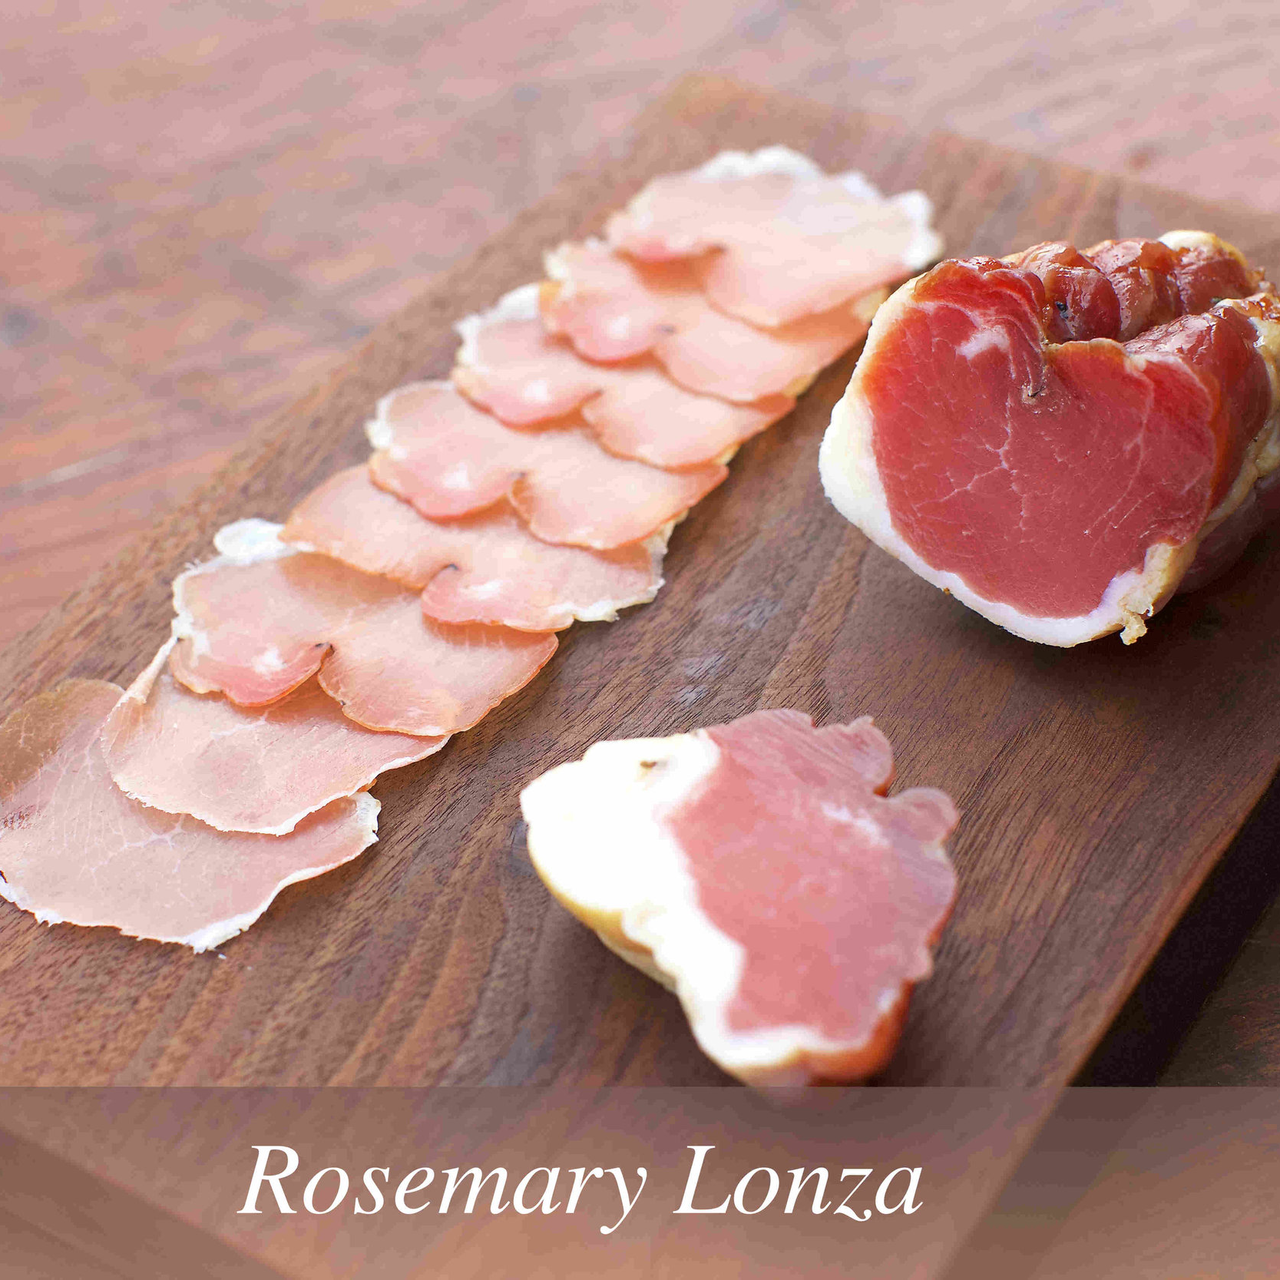 1732 Meats Rosemary Lonza